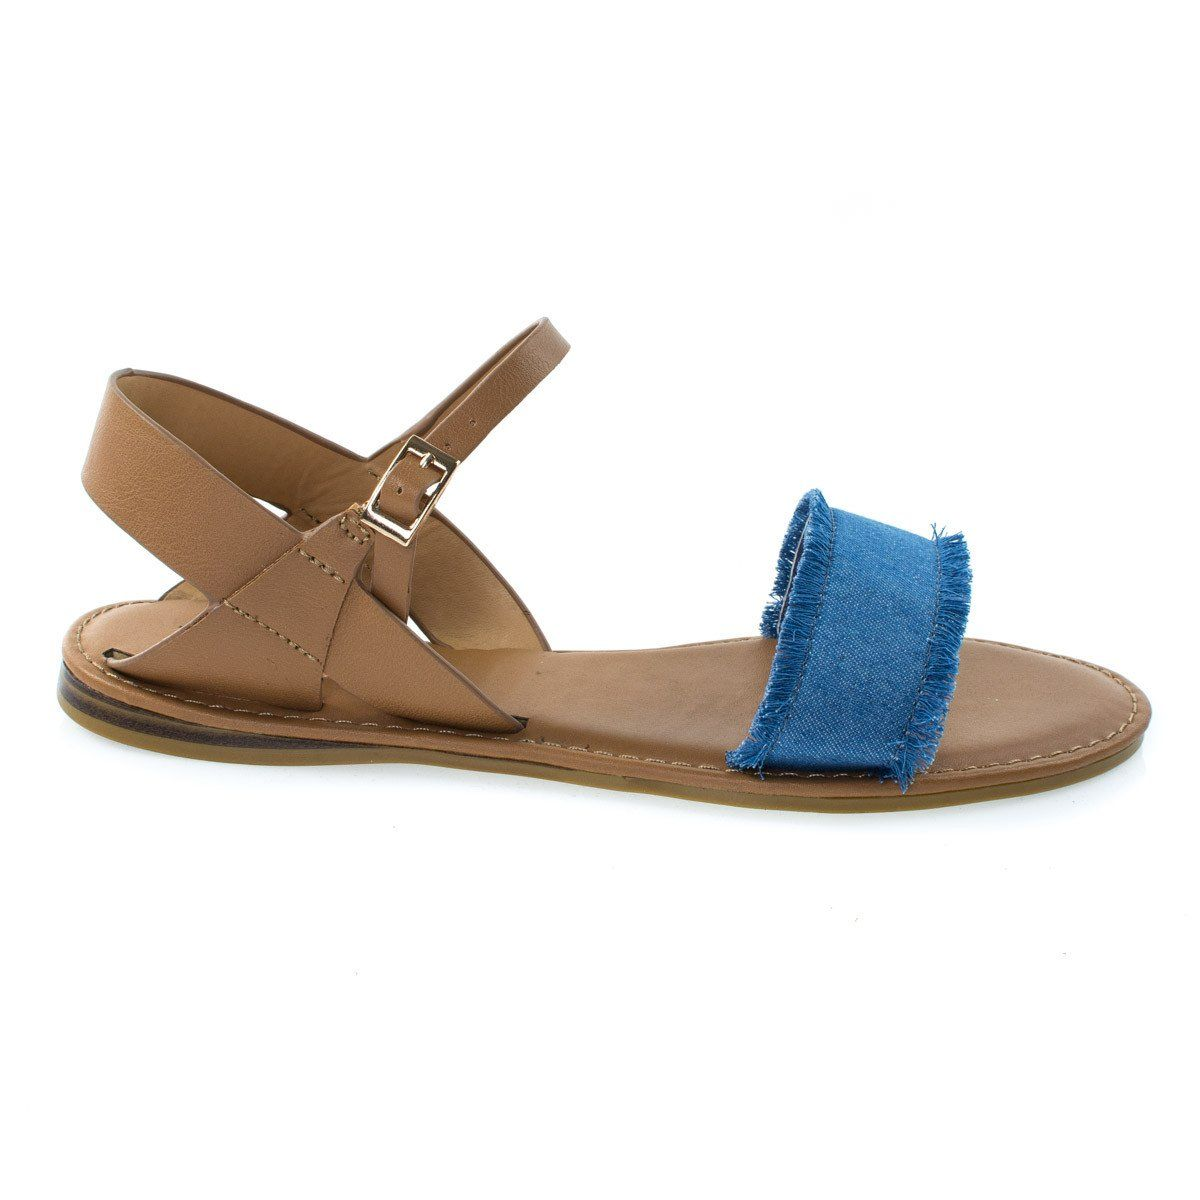 Bliss19M By Bamboo, Women's Flat Sandal w Torn Frail